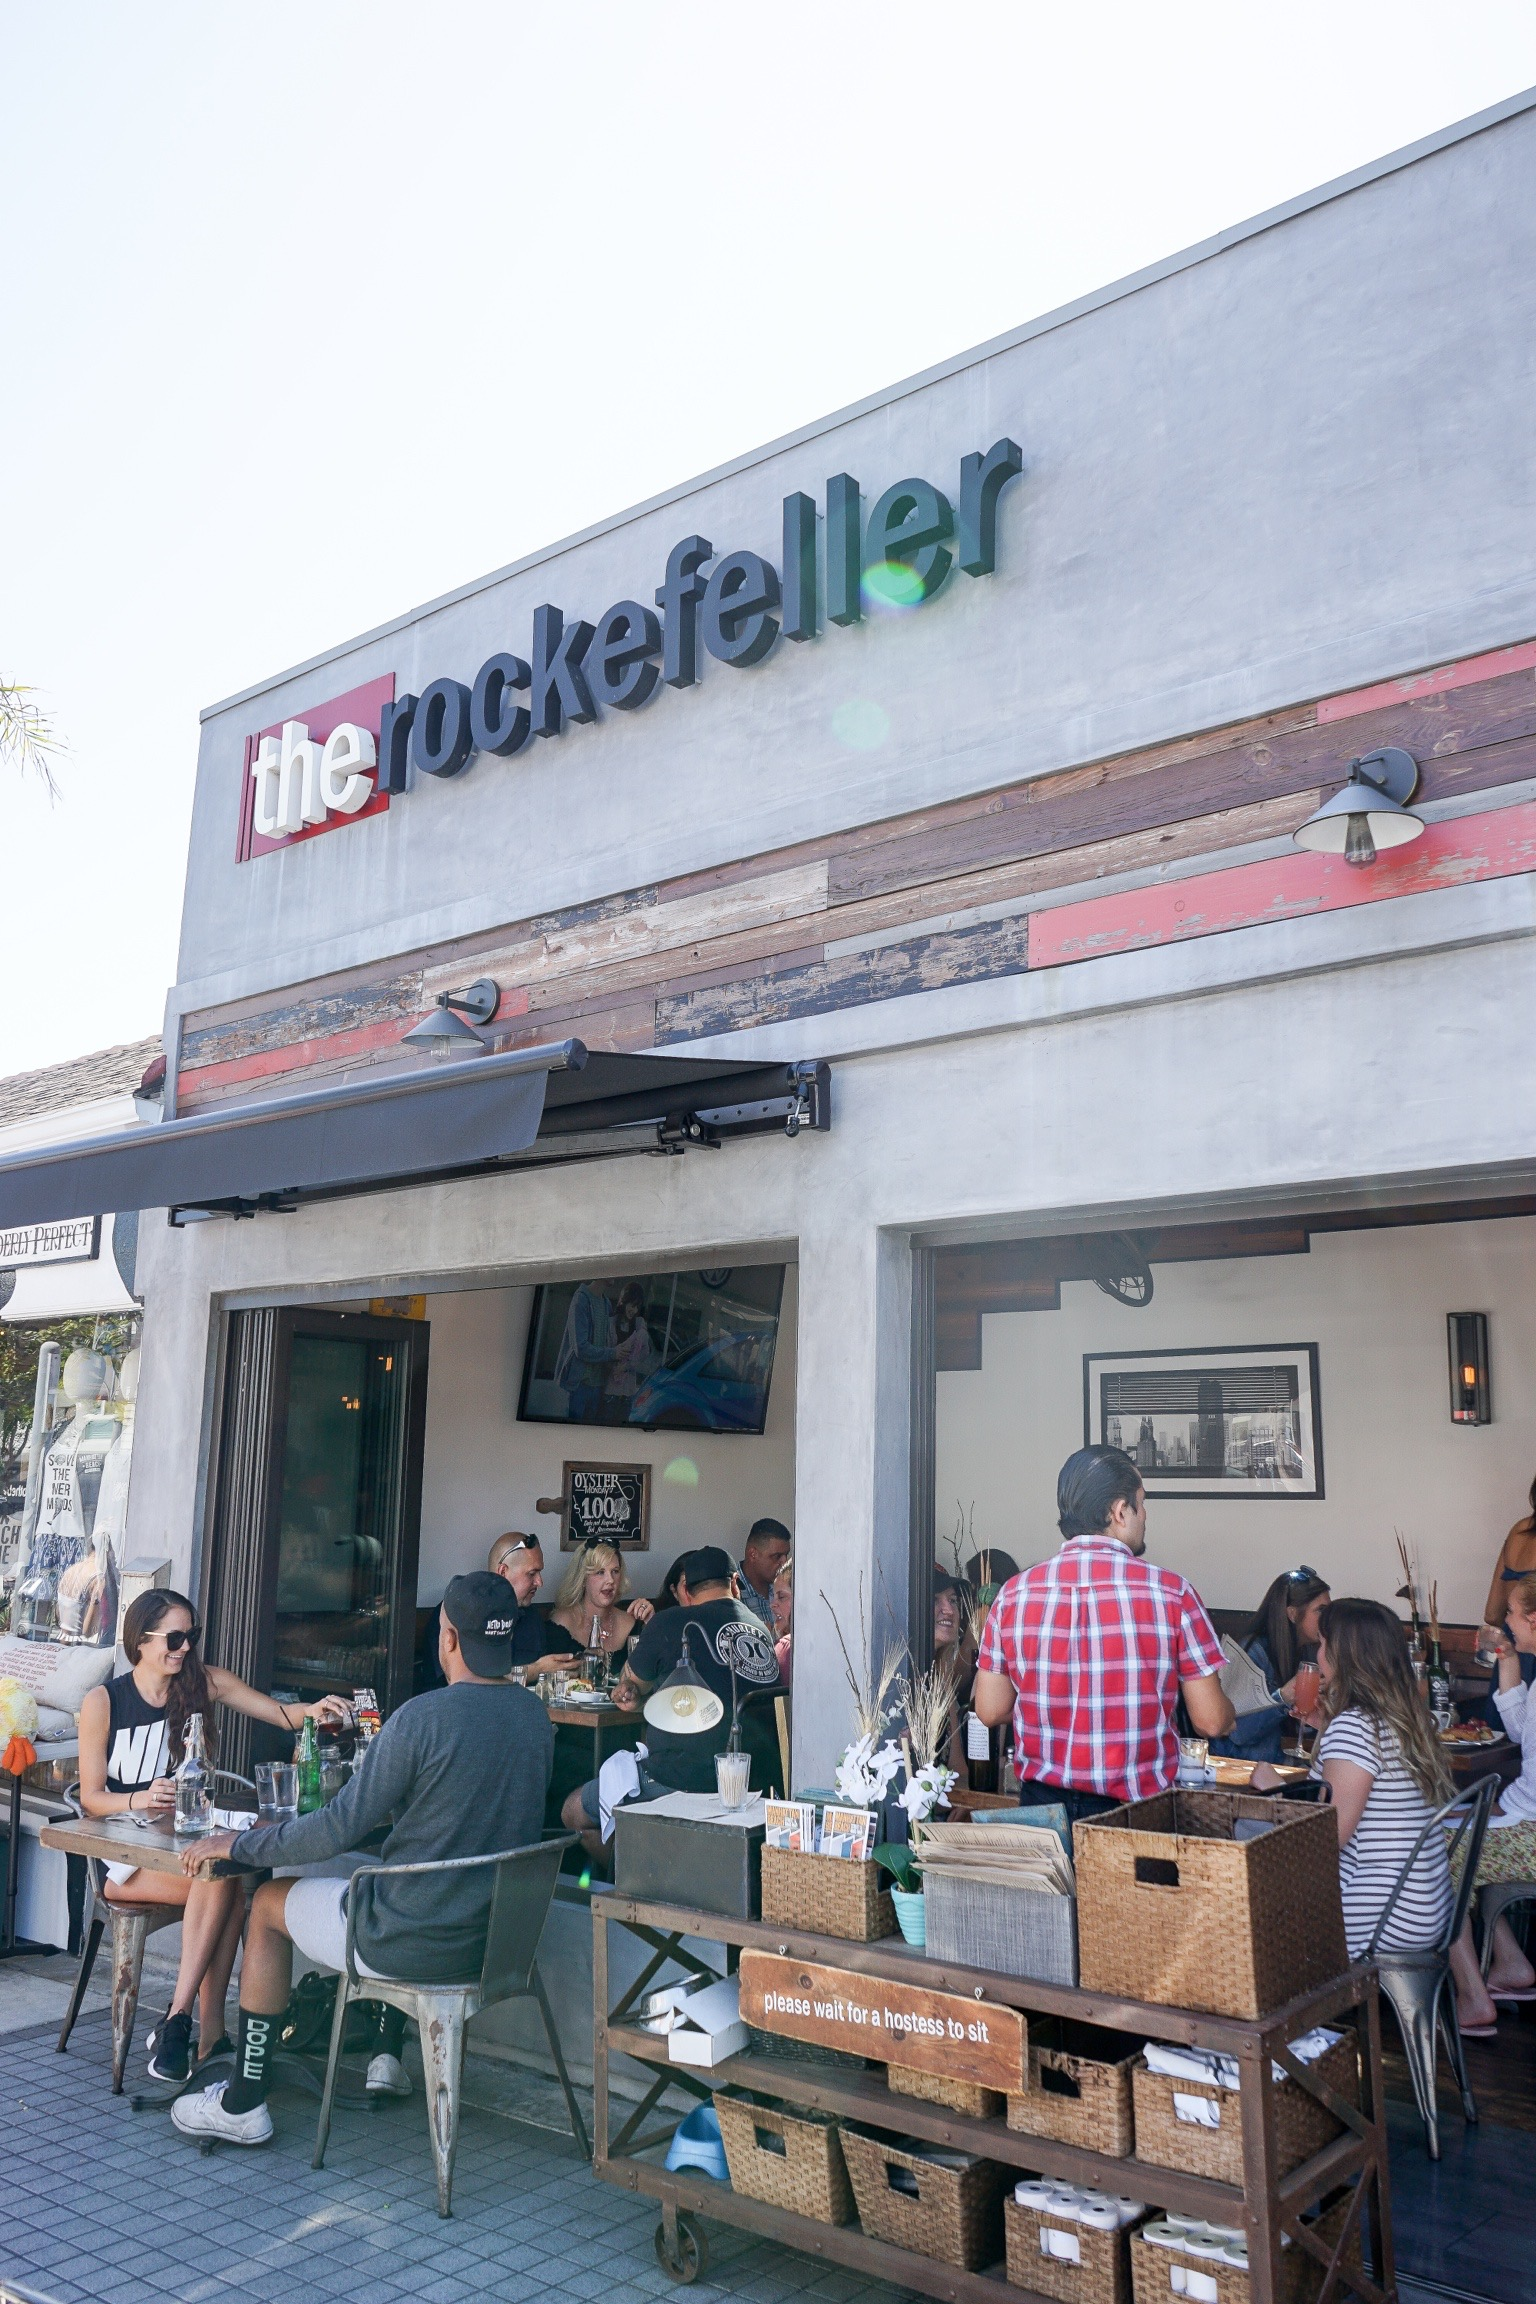 The Rockefeller, Manhattan Beach, CA